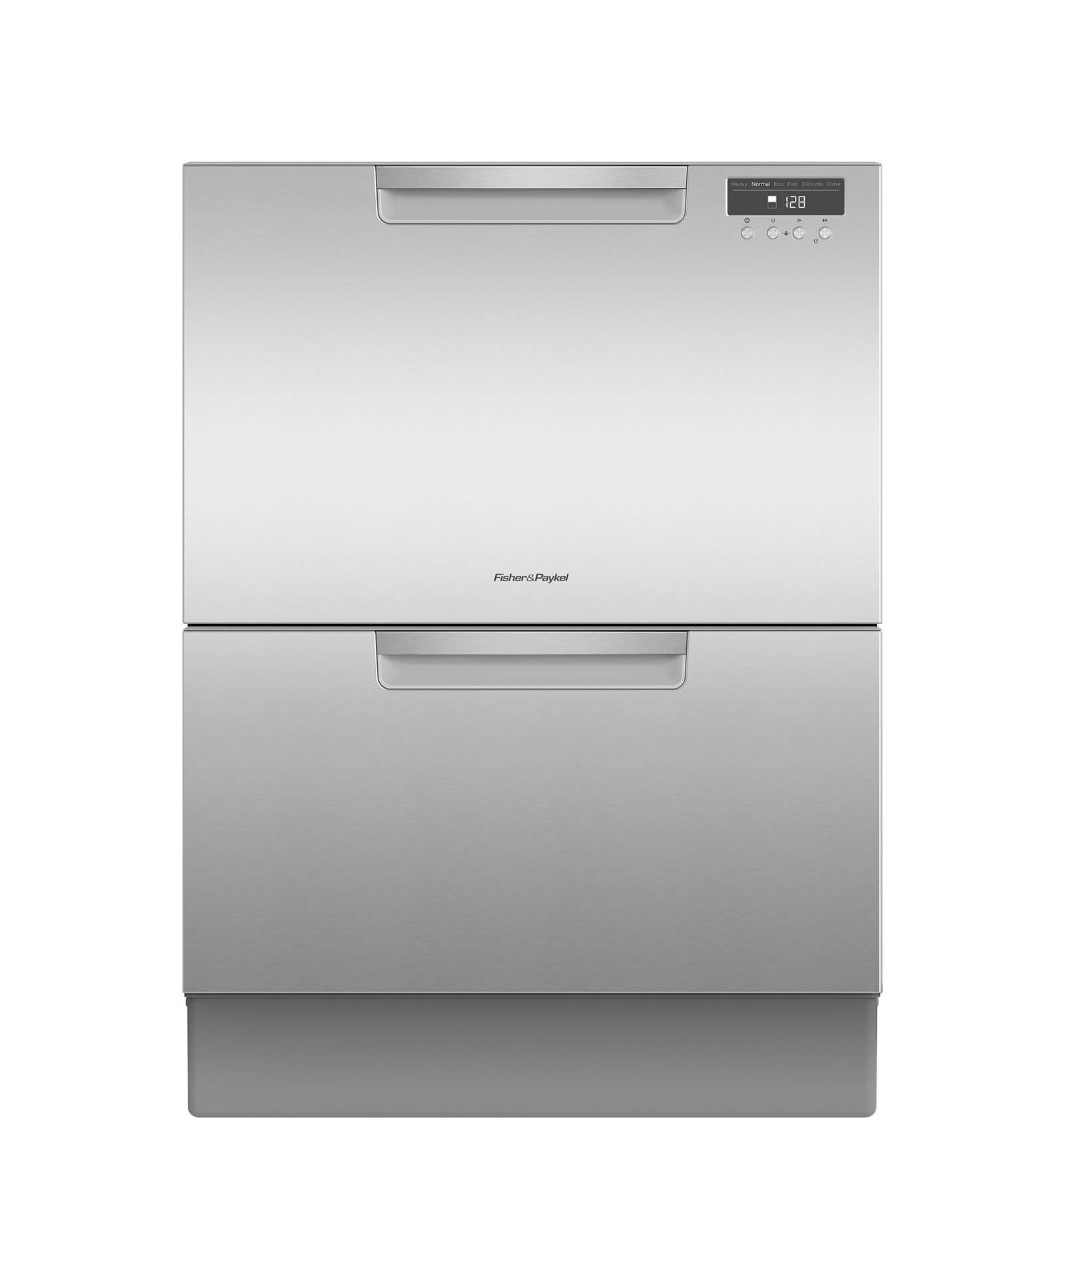 Reilly 39 s home appliances fisher paykel double dish drawer stainless steel - Fisher paykel dishwasher drawer reviews ...